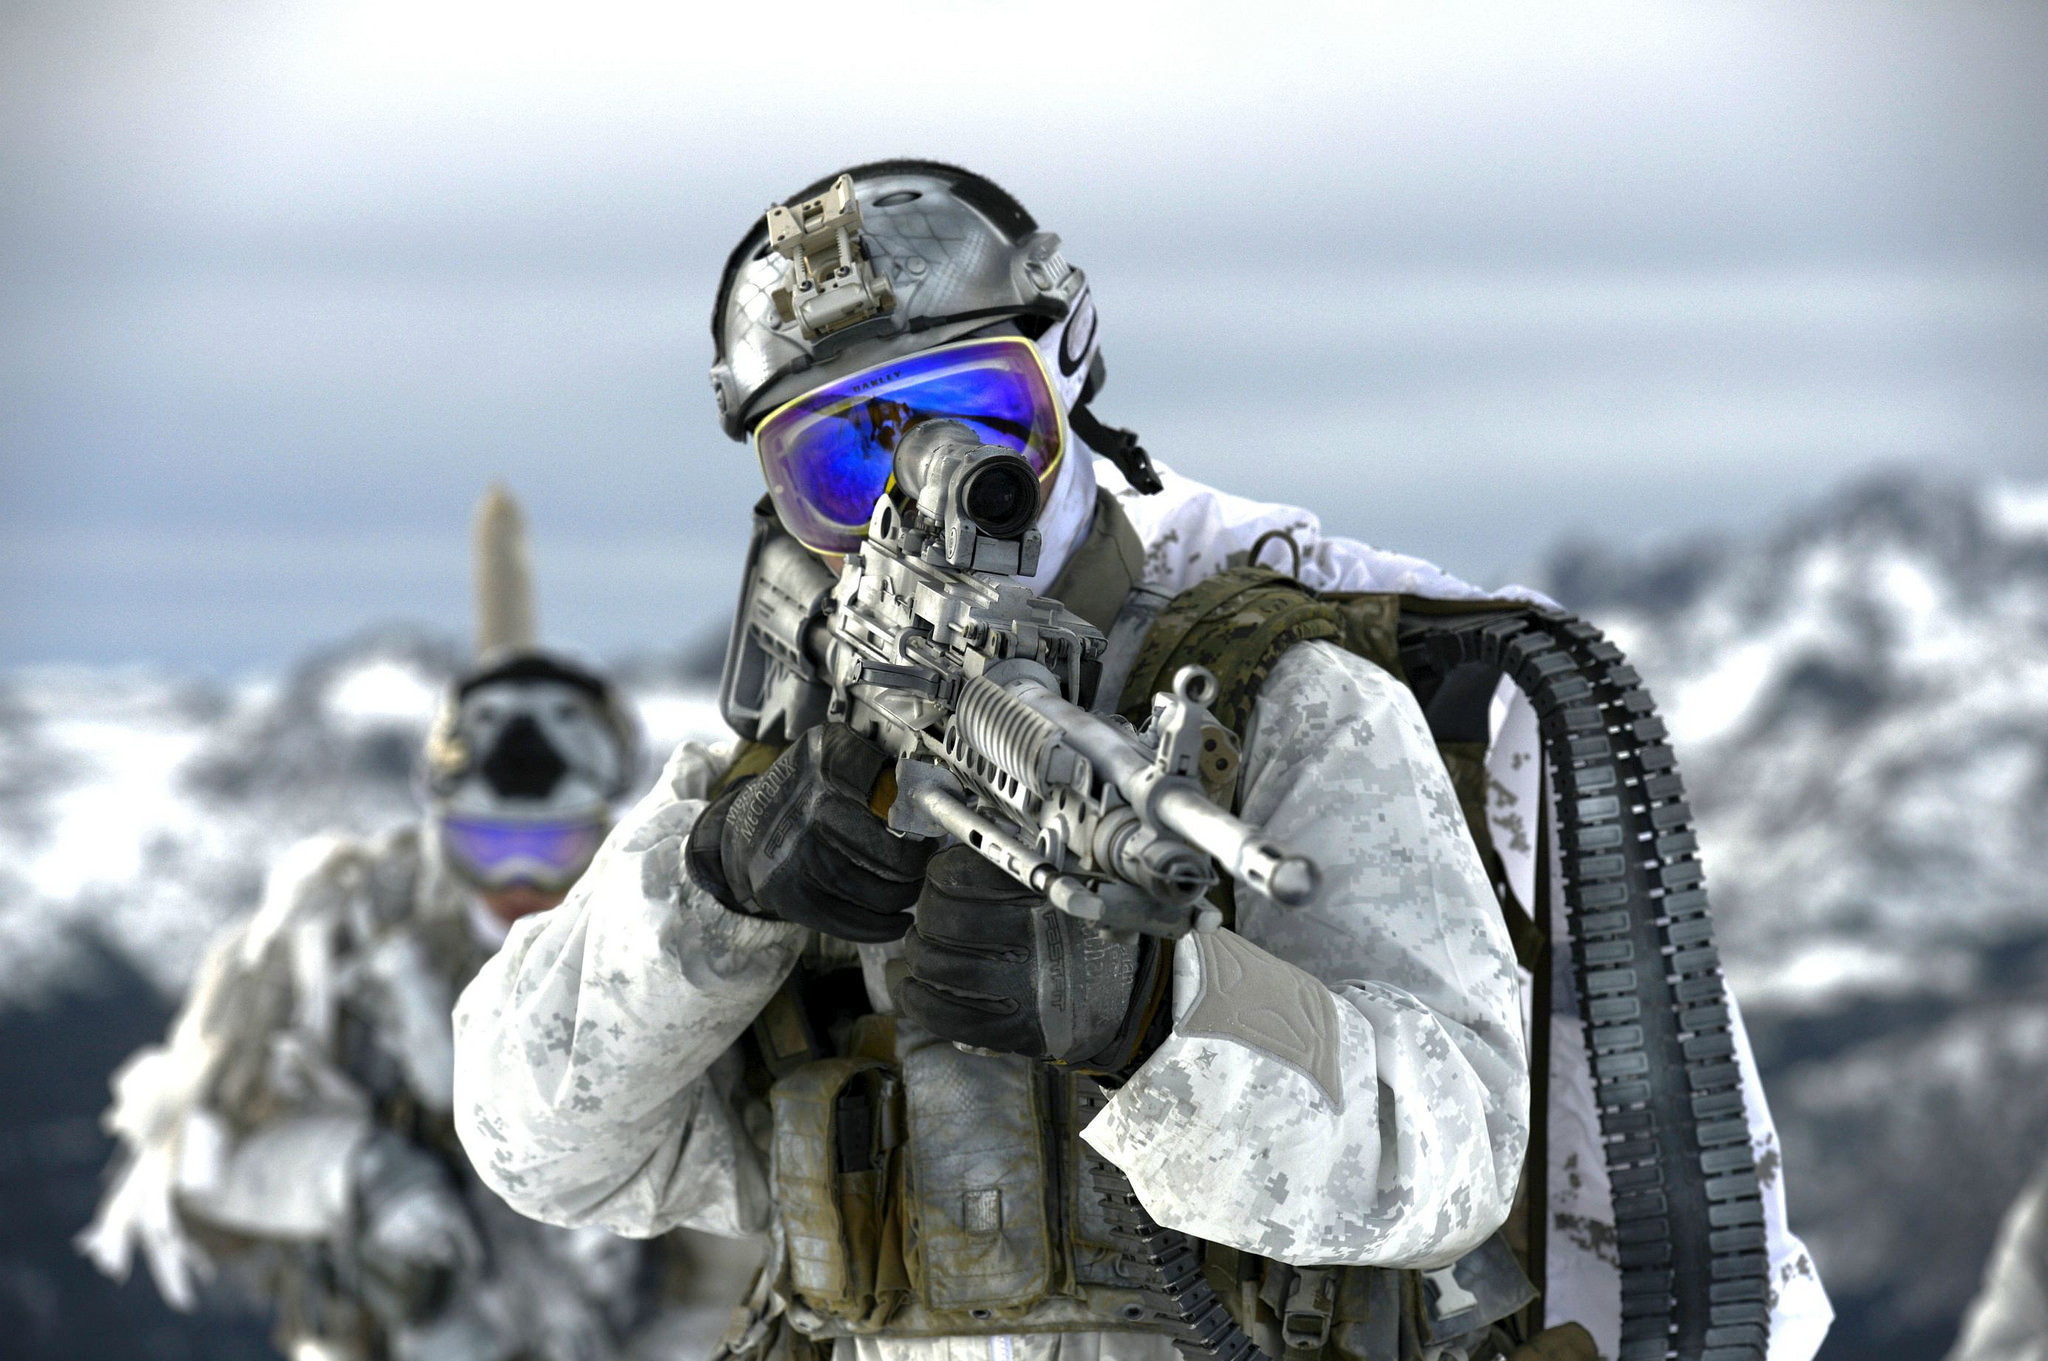 2048x1361 Wallpaper united states navy seals, soldiers, weapons wallpapers men .